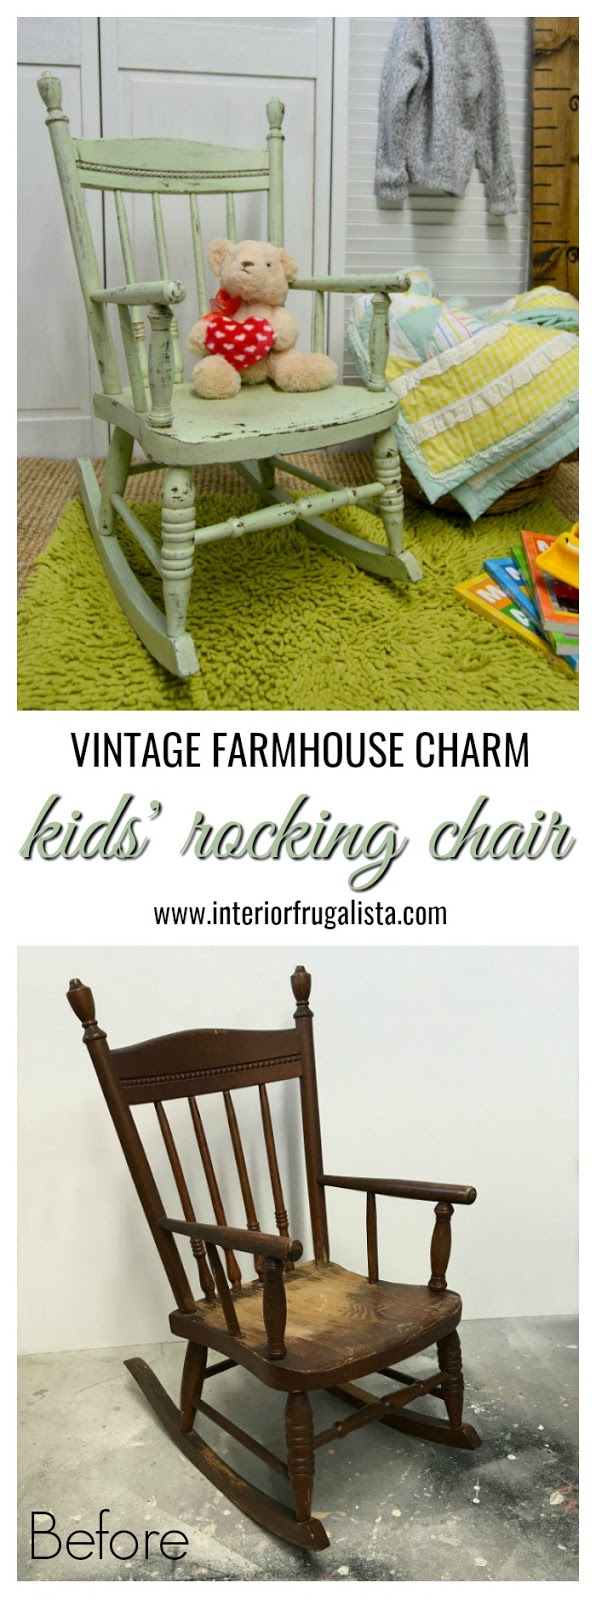 Kids Rocking Chair With Vintage Farmhouse Charm